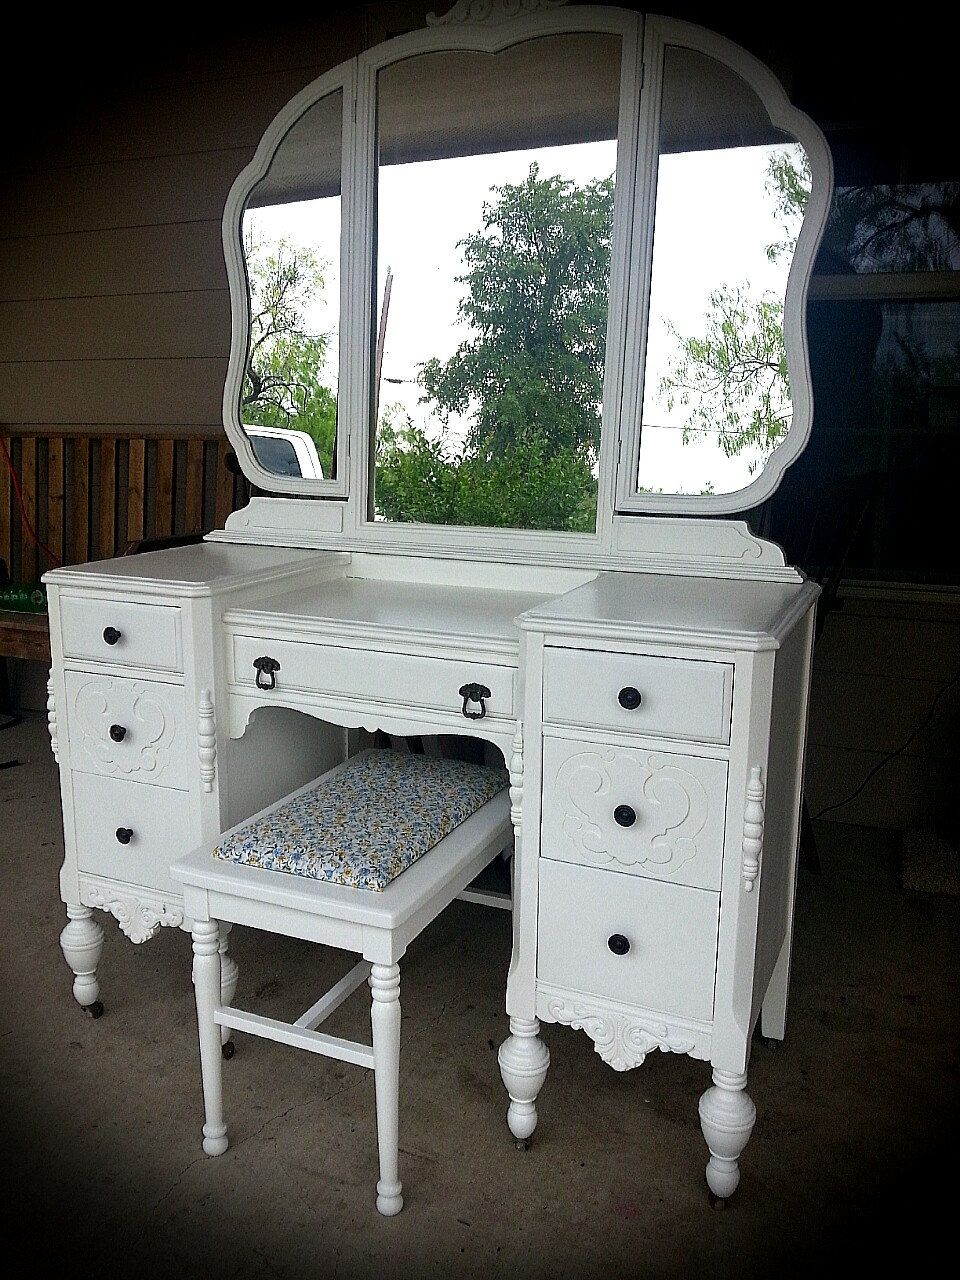 Sold vintage vanity dressing table and mirror painted furniture by